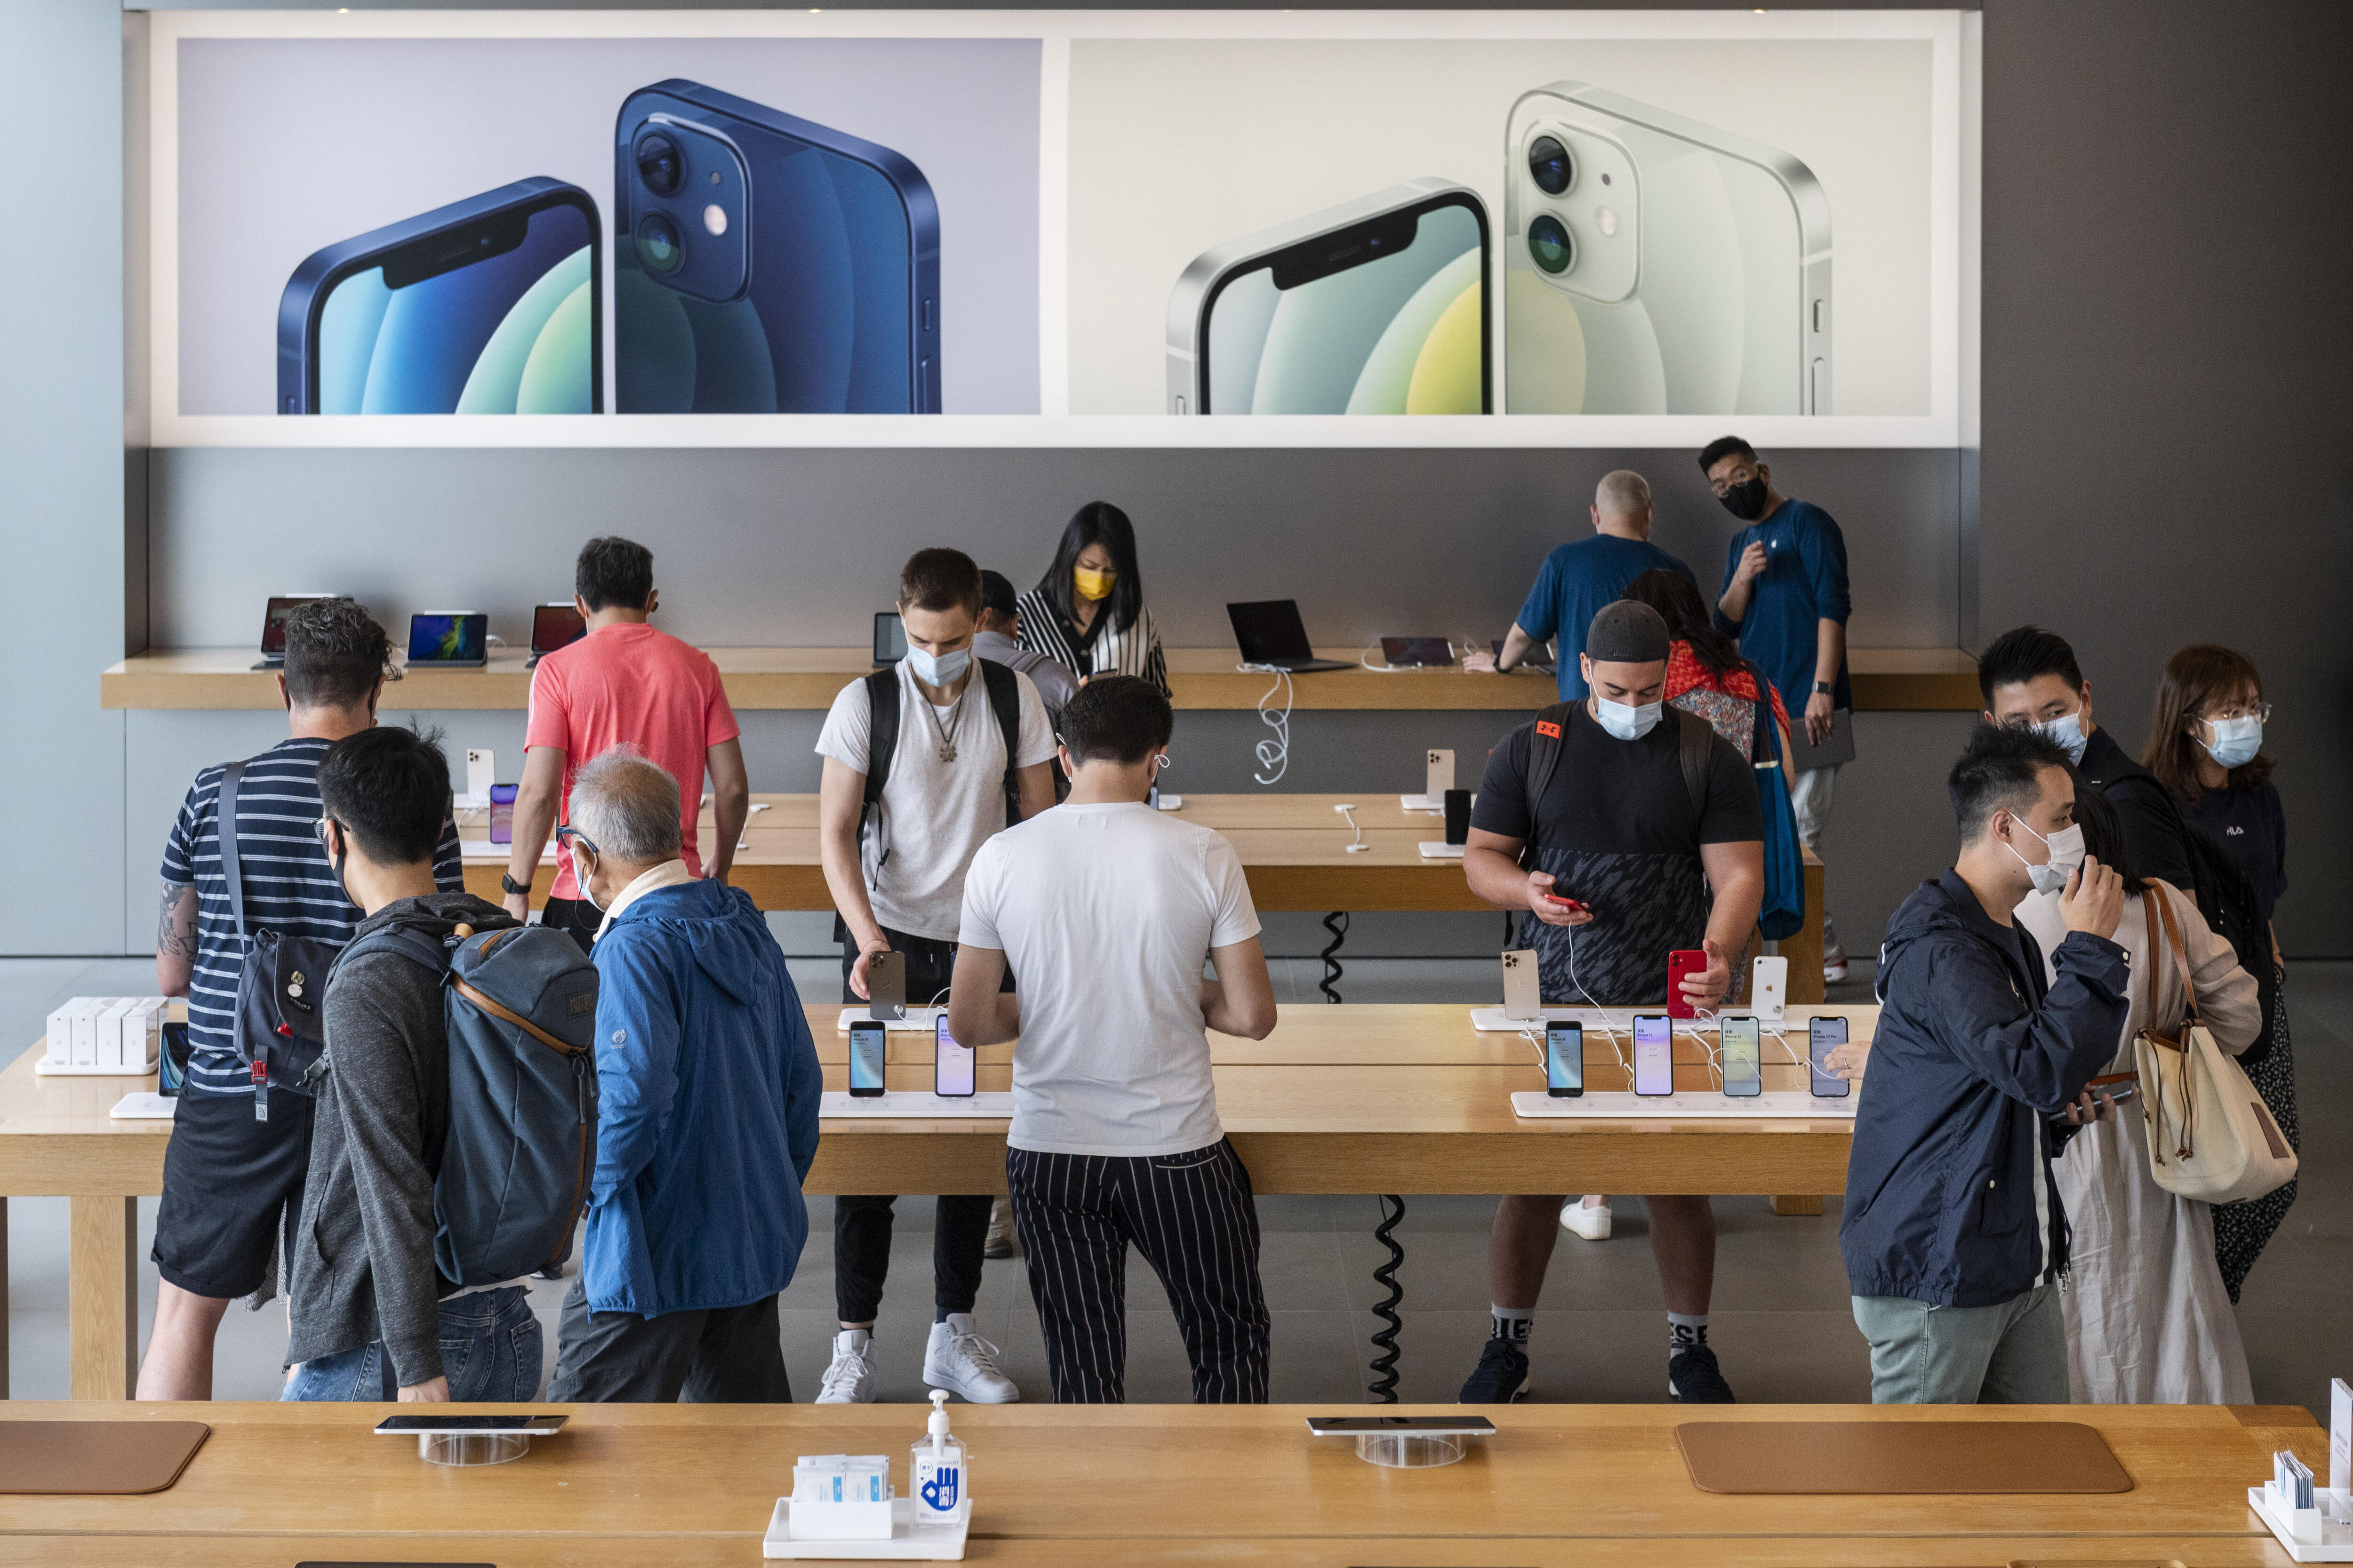 Apple Stores reportedly to end mask requirement for vaccinated customers     - CNET